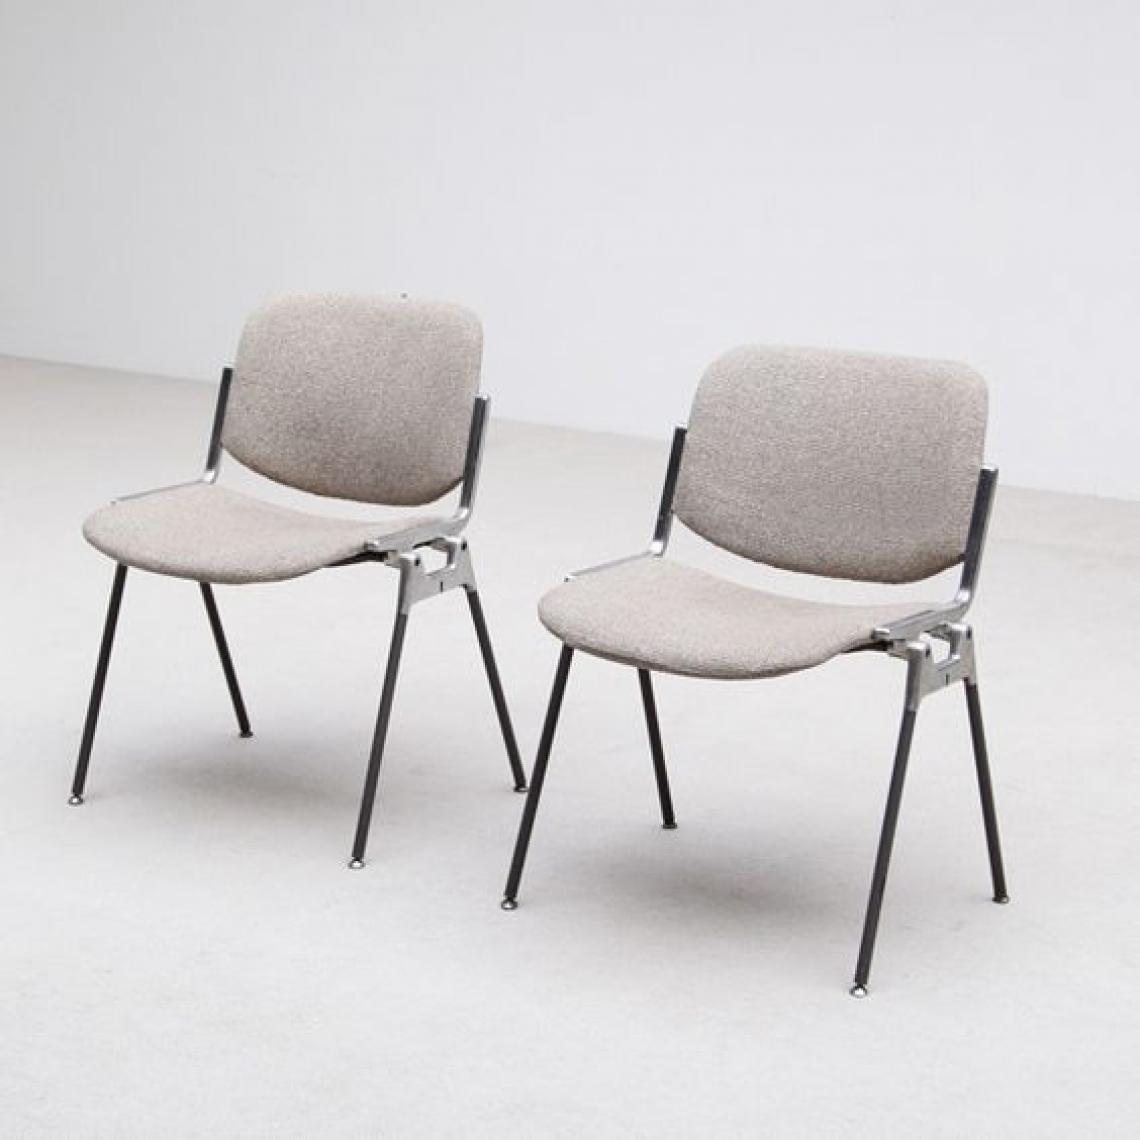 Iconic 1950s Castelli Stacking Chairs